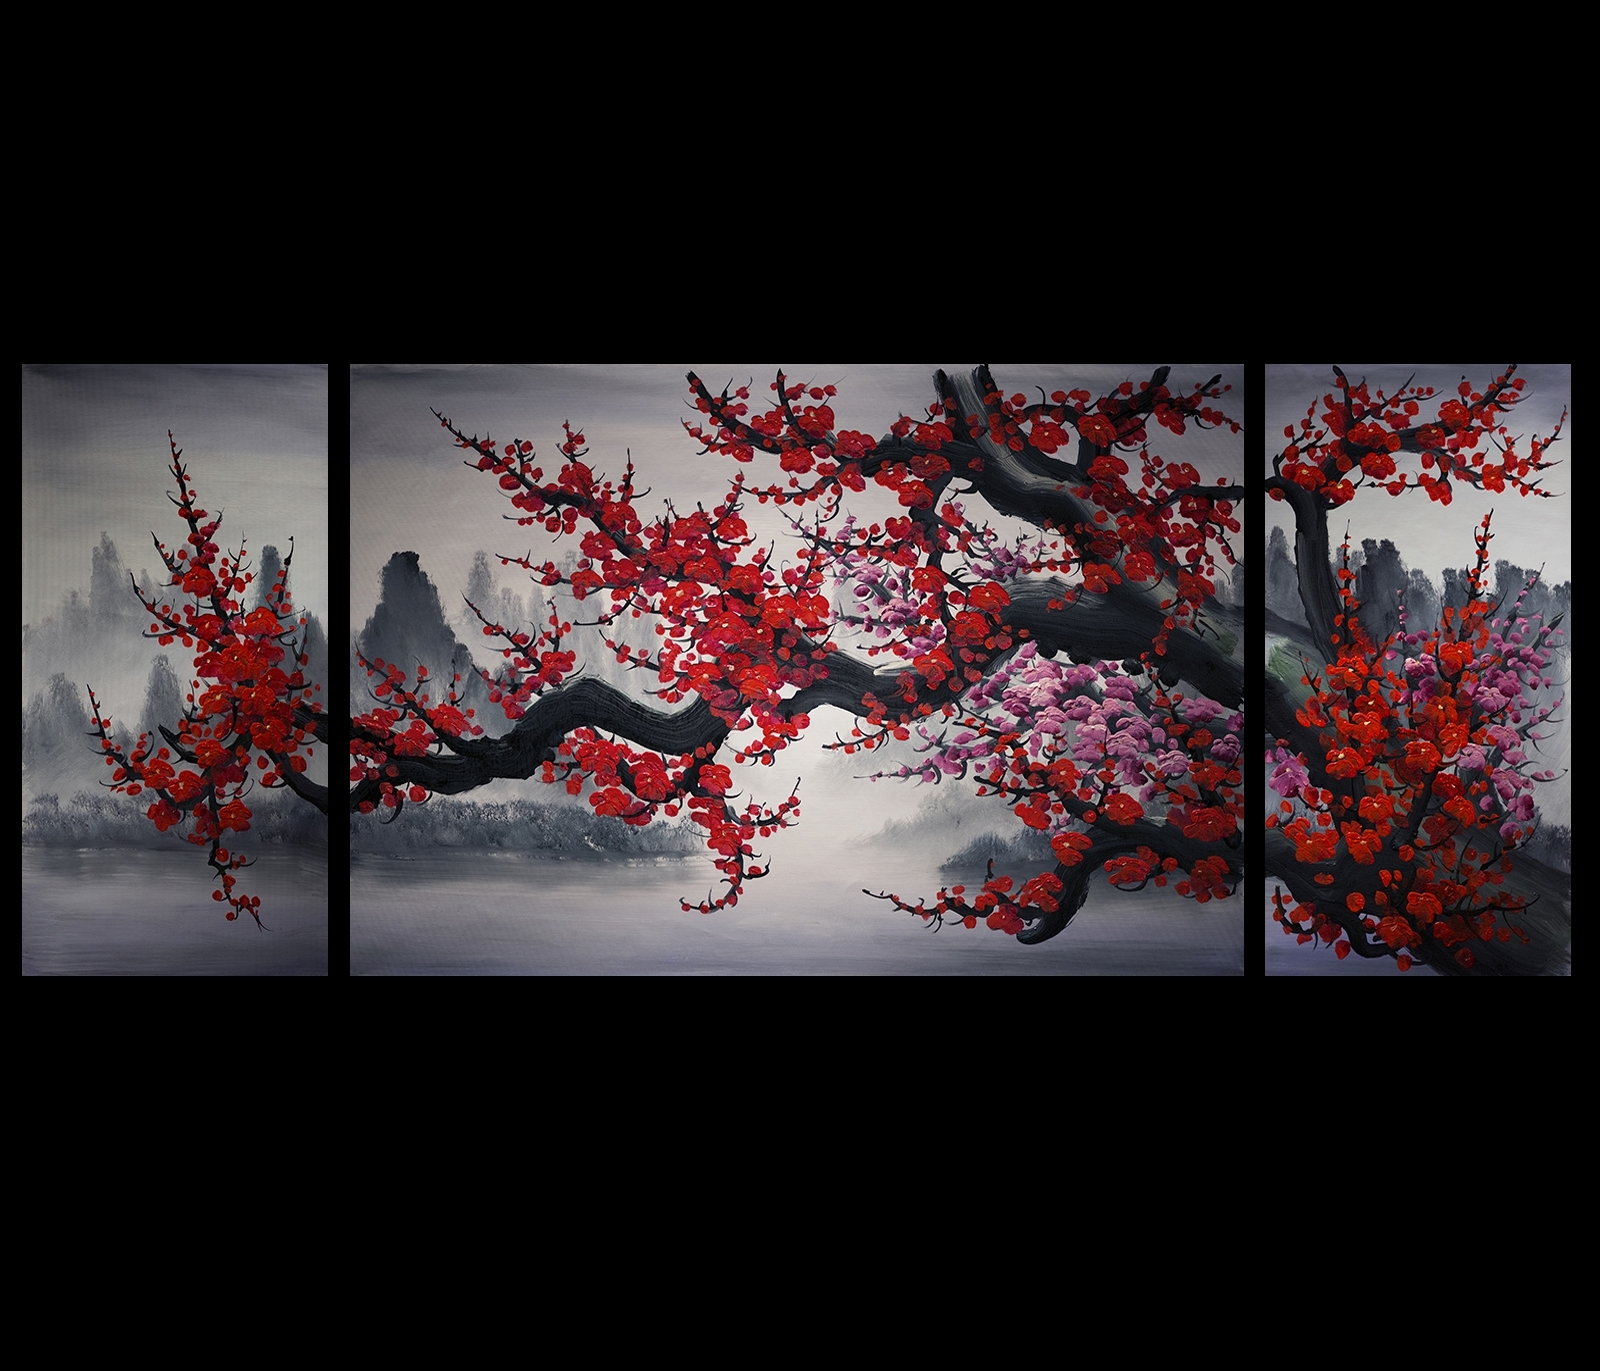 Chinese Cherry Blossom Painting Original Modern Wall Art Decor With Regard To Most Popular Abstract Cherry Blossom Wall Art (View 11 of 20)